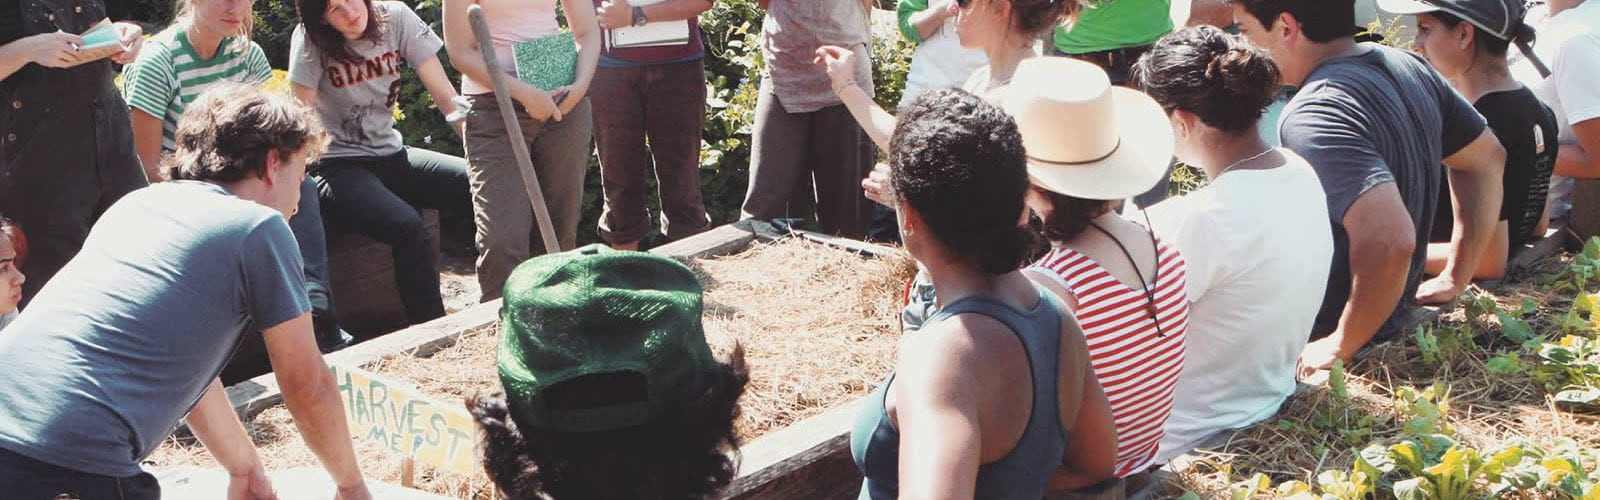 garden-for-environment-jardin-ecologie-san-francisco-une